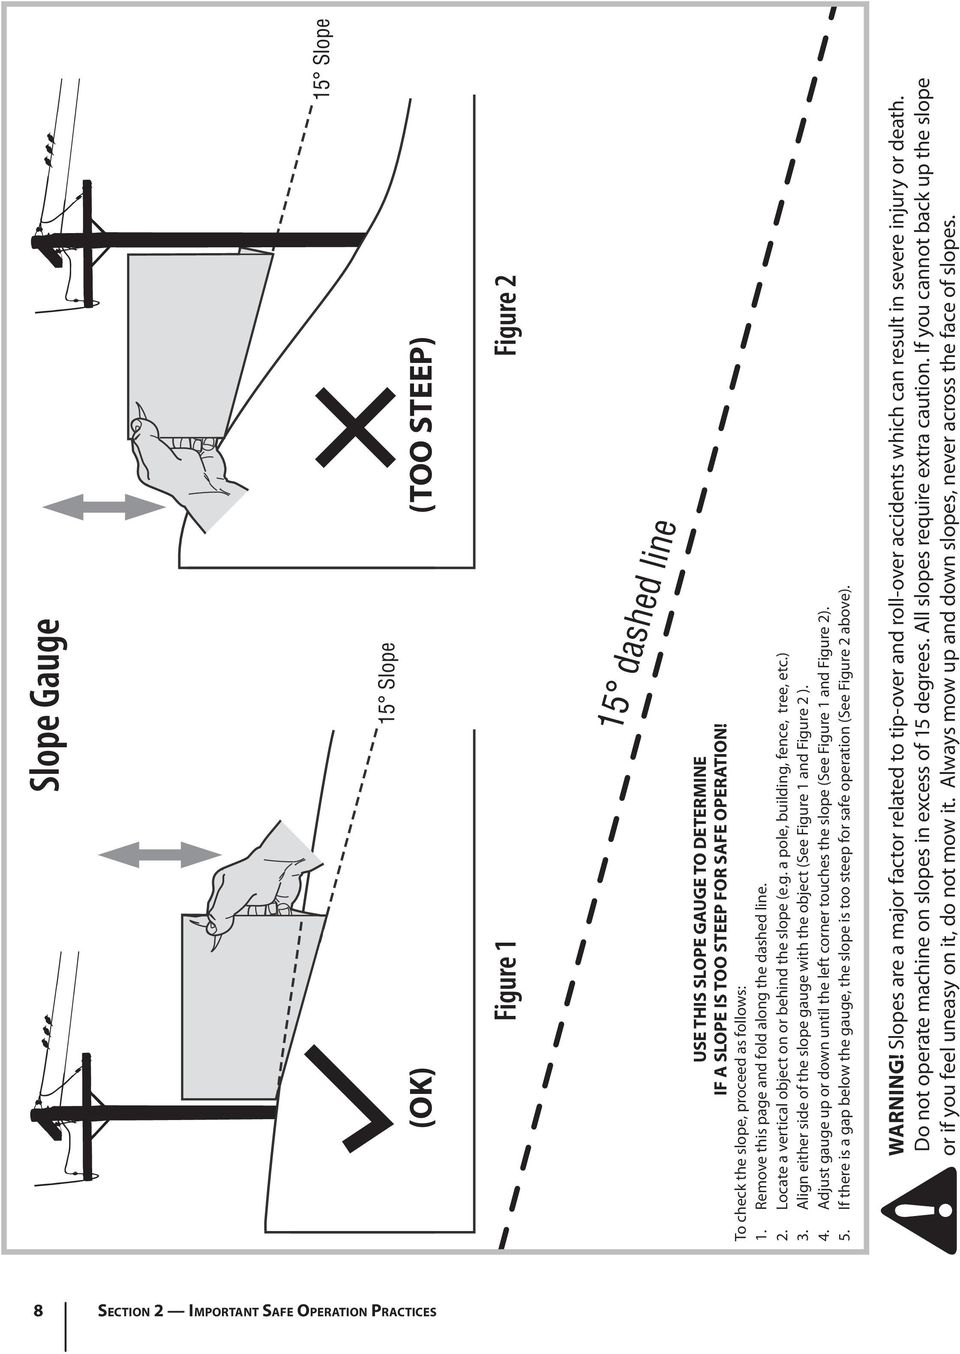 Align either side of the slope gauge with the object (See Figure 1 and Figure 2 ). 4. Adjust gauge up or down until the left corner touches the slope (See Figure 1 and Figure 2). 5.